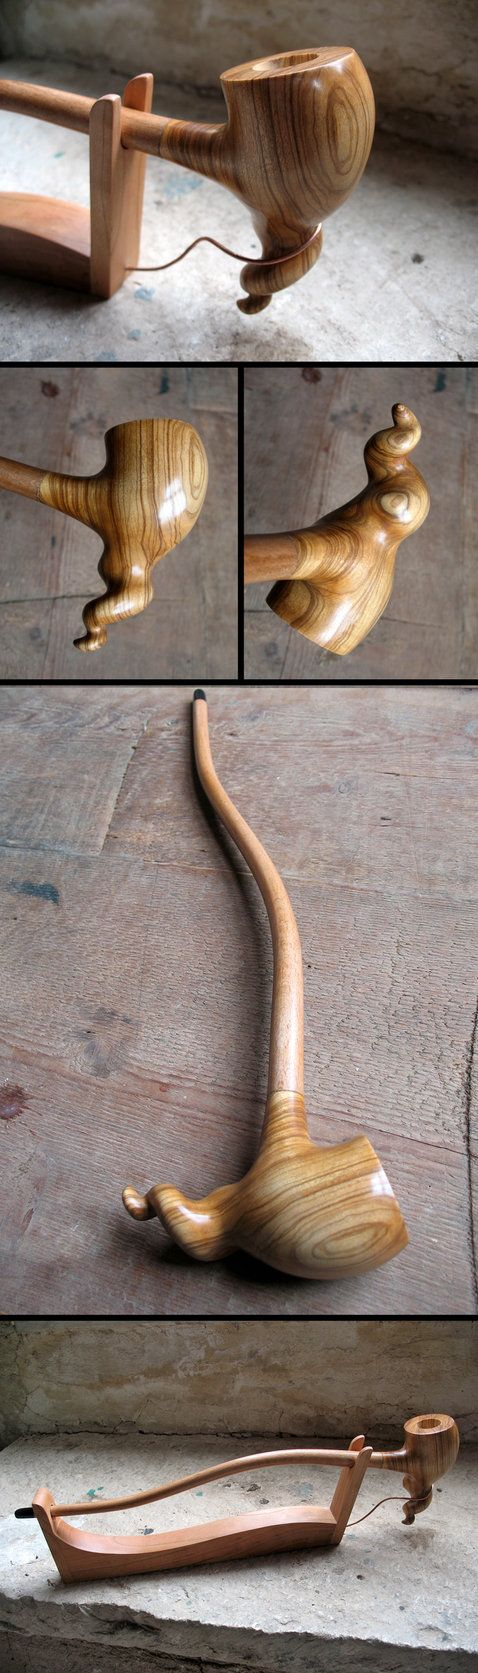 A dragon-pipe, smokable, made on commission, original design by me. The bowl is made of olive wood from Puglia, the removable stem is made of flamed maple steam-bended, with ebony wood tip. Finishe...